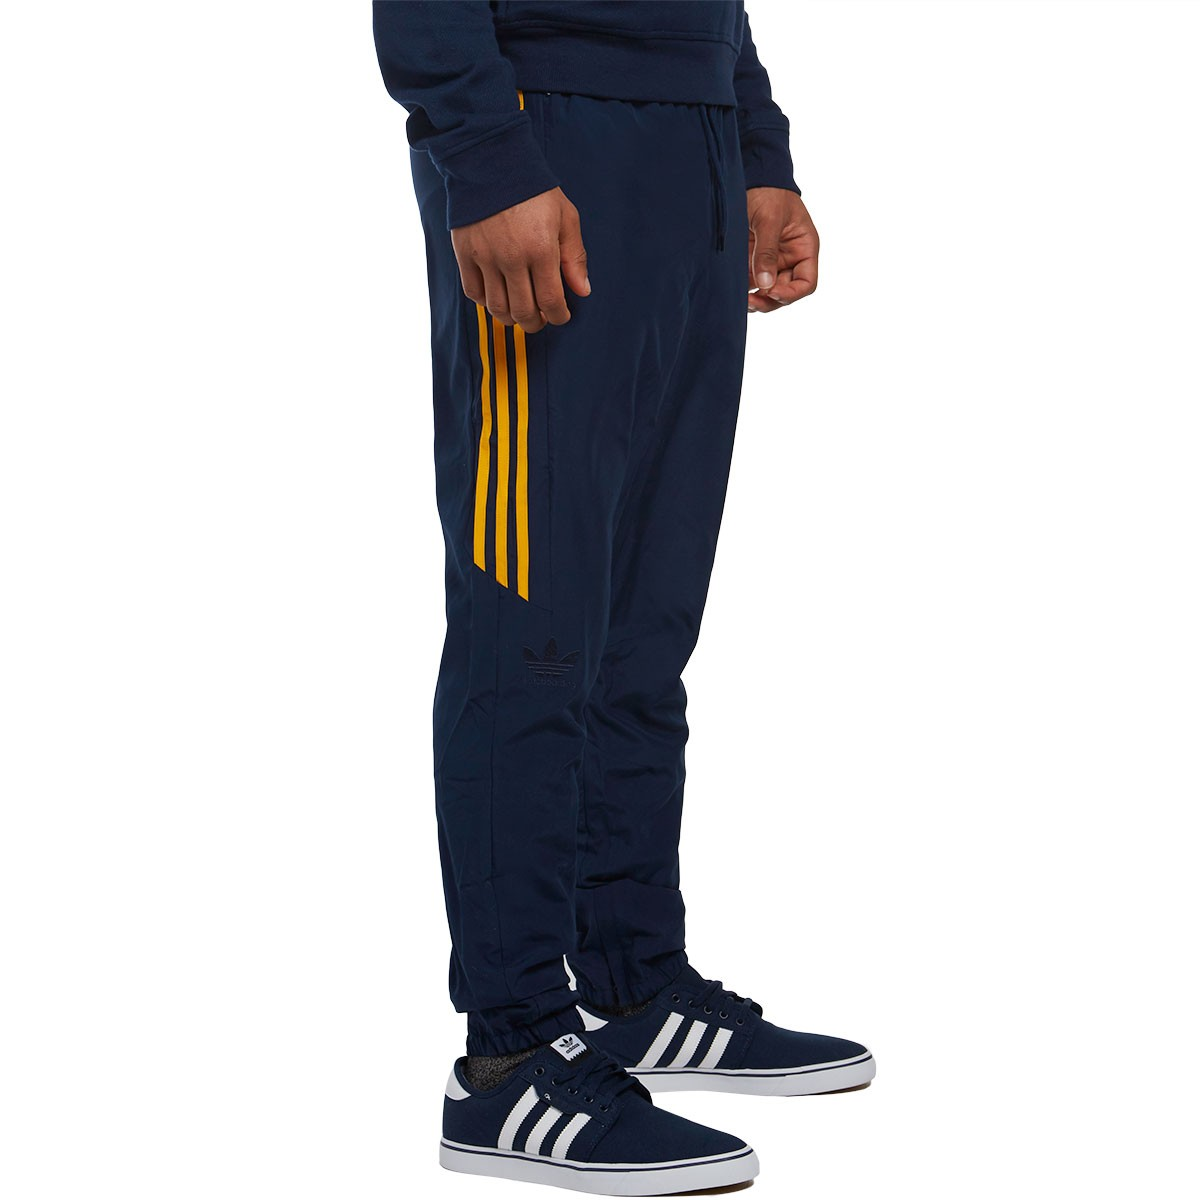 huge discount 0449e 53b49 Adidas X Hardies Pants - Navy Gold - XXL